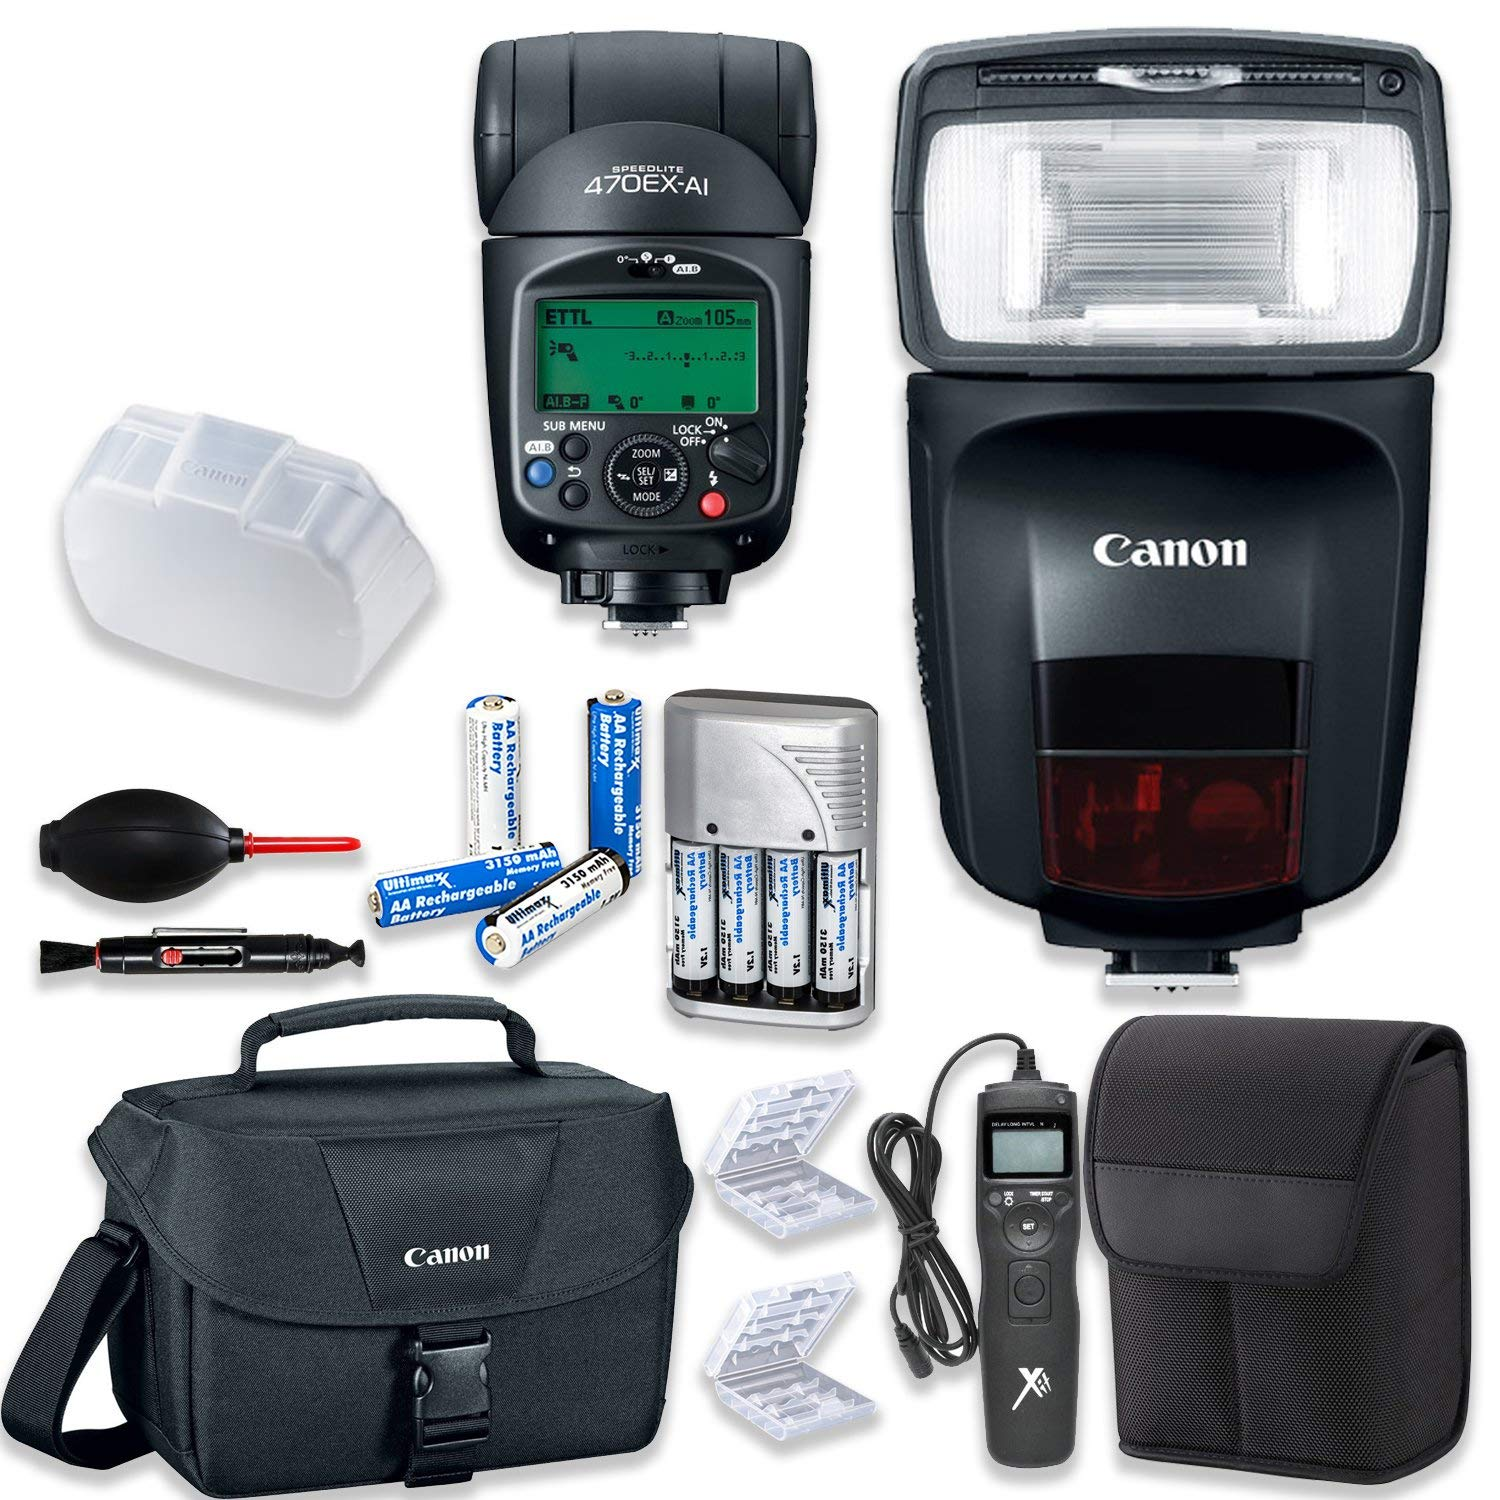 Canon Speedlite 470EX-AI Flash with Canon Speedlite Case + Canon Shoulder Bag + Universal Timer Remote + 4 High Capacity AA Rechargeable Batteries & Charger + Accessory Bundle by Canon (Image #1)